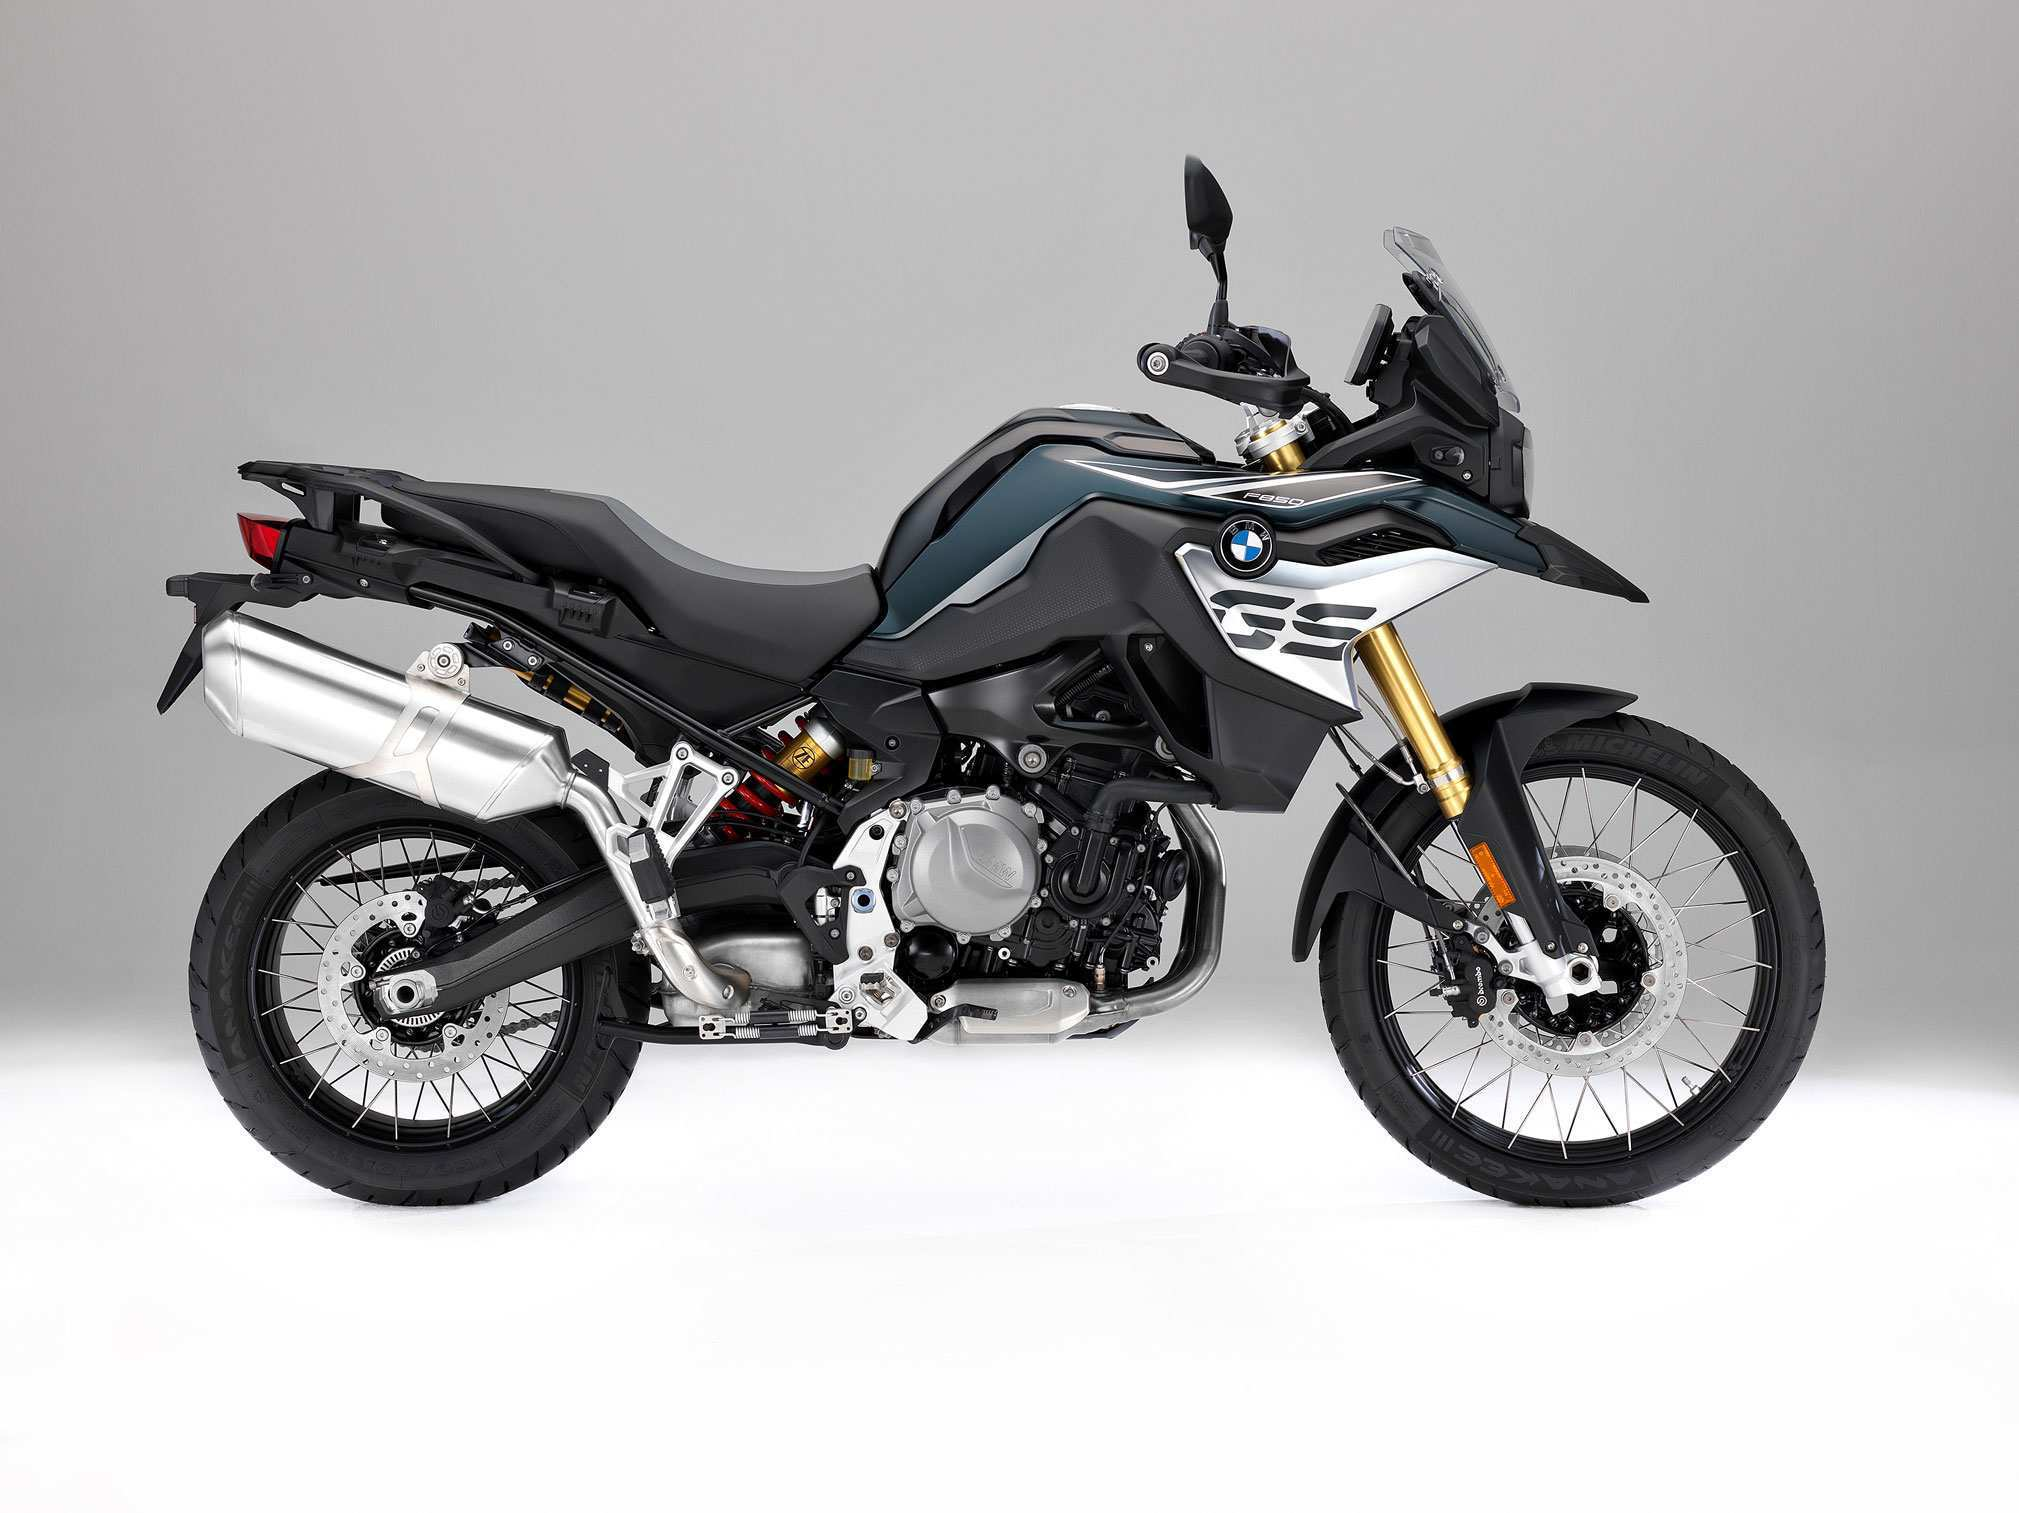 28 Great Bmw F850Gs Adventure 2019 Engine Overview for Bmw F850Gs Adventure 2019 Engine